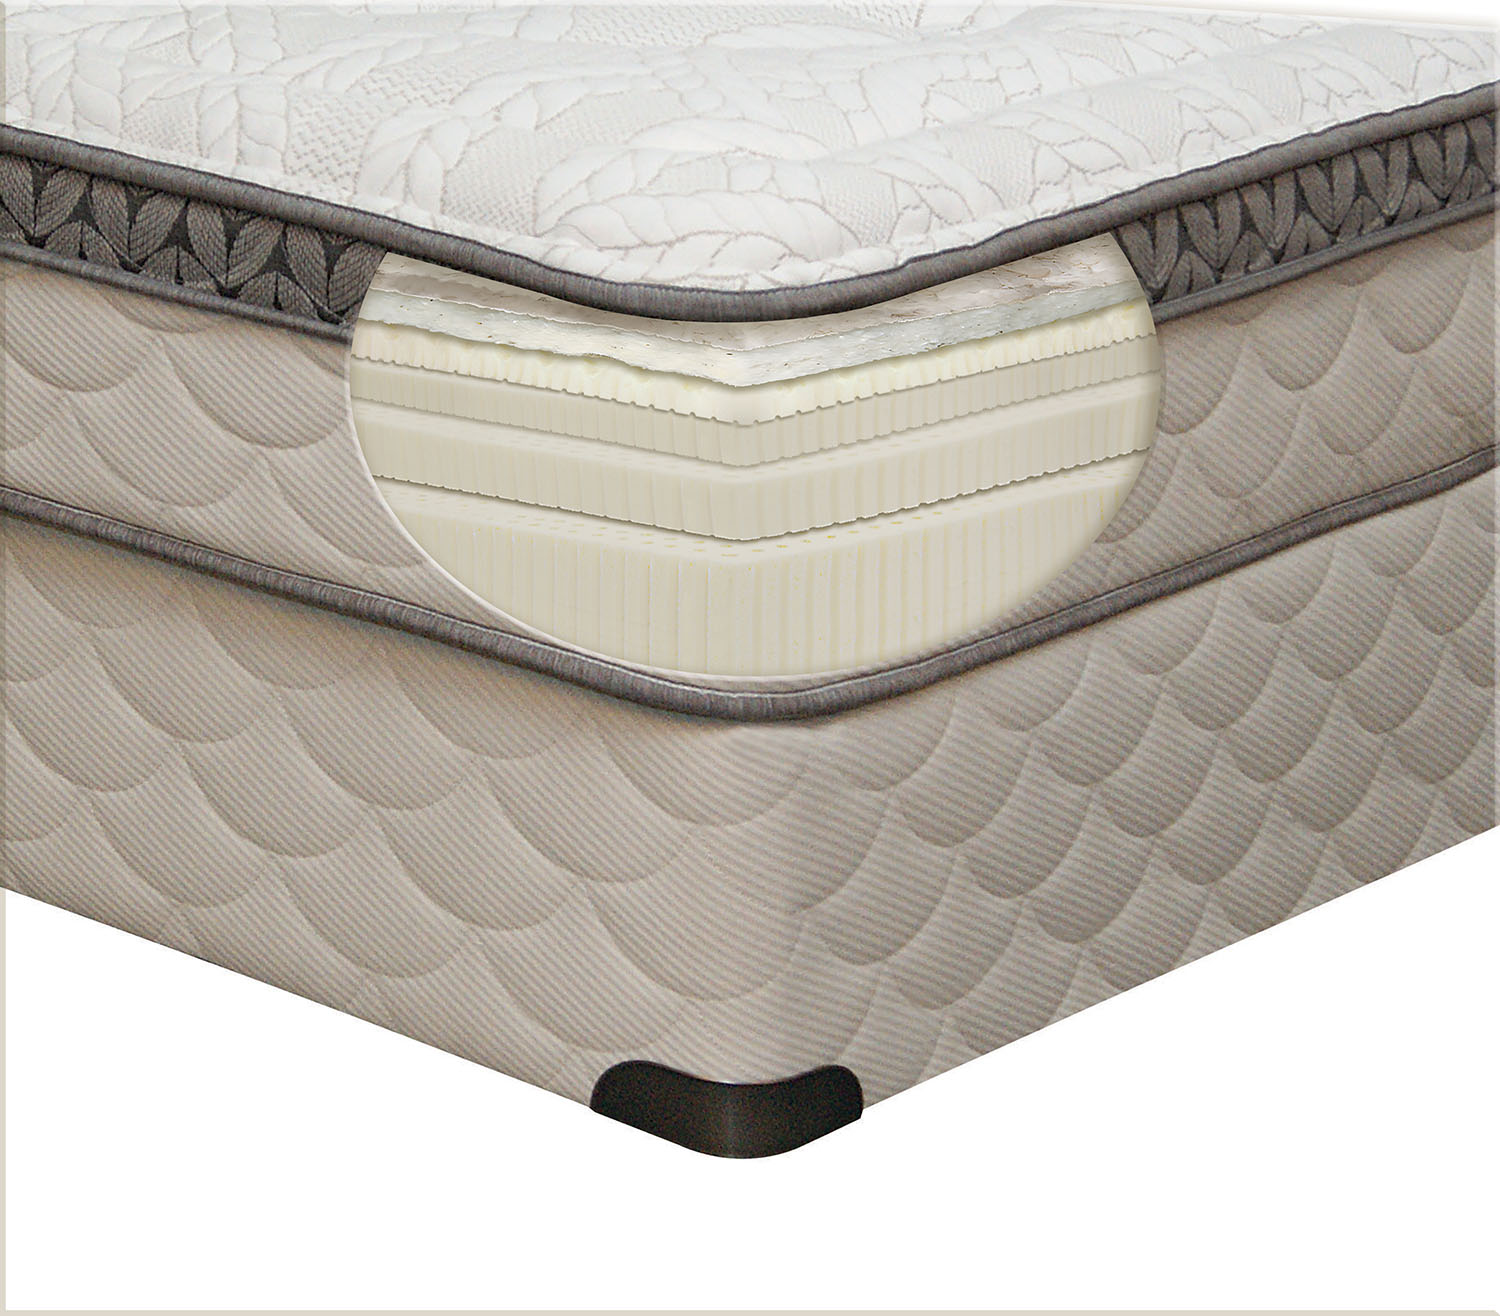 Sofa Bed Latex Mattress: Natura Twilight Latex Mattress